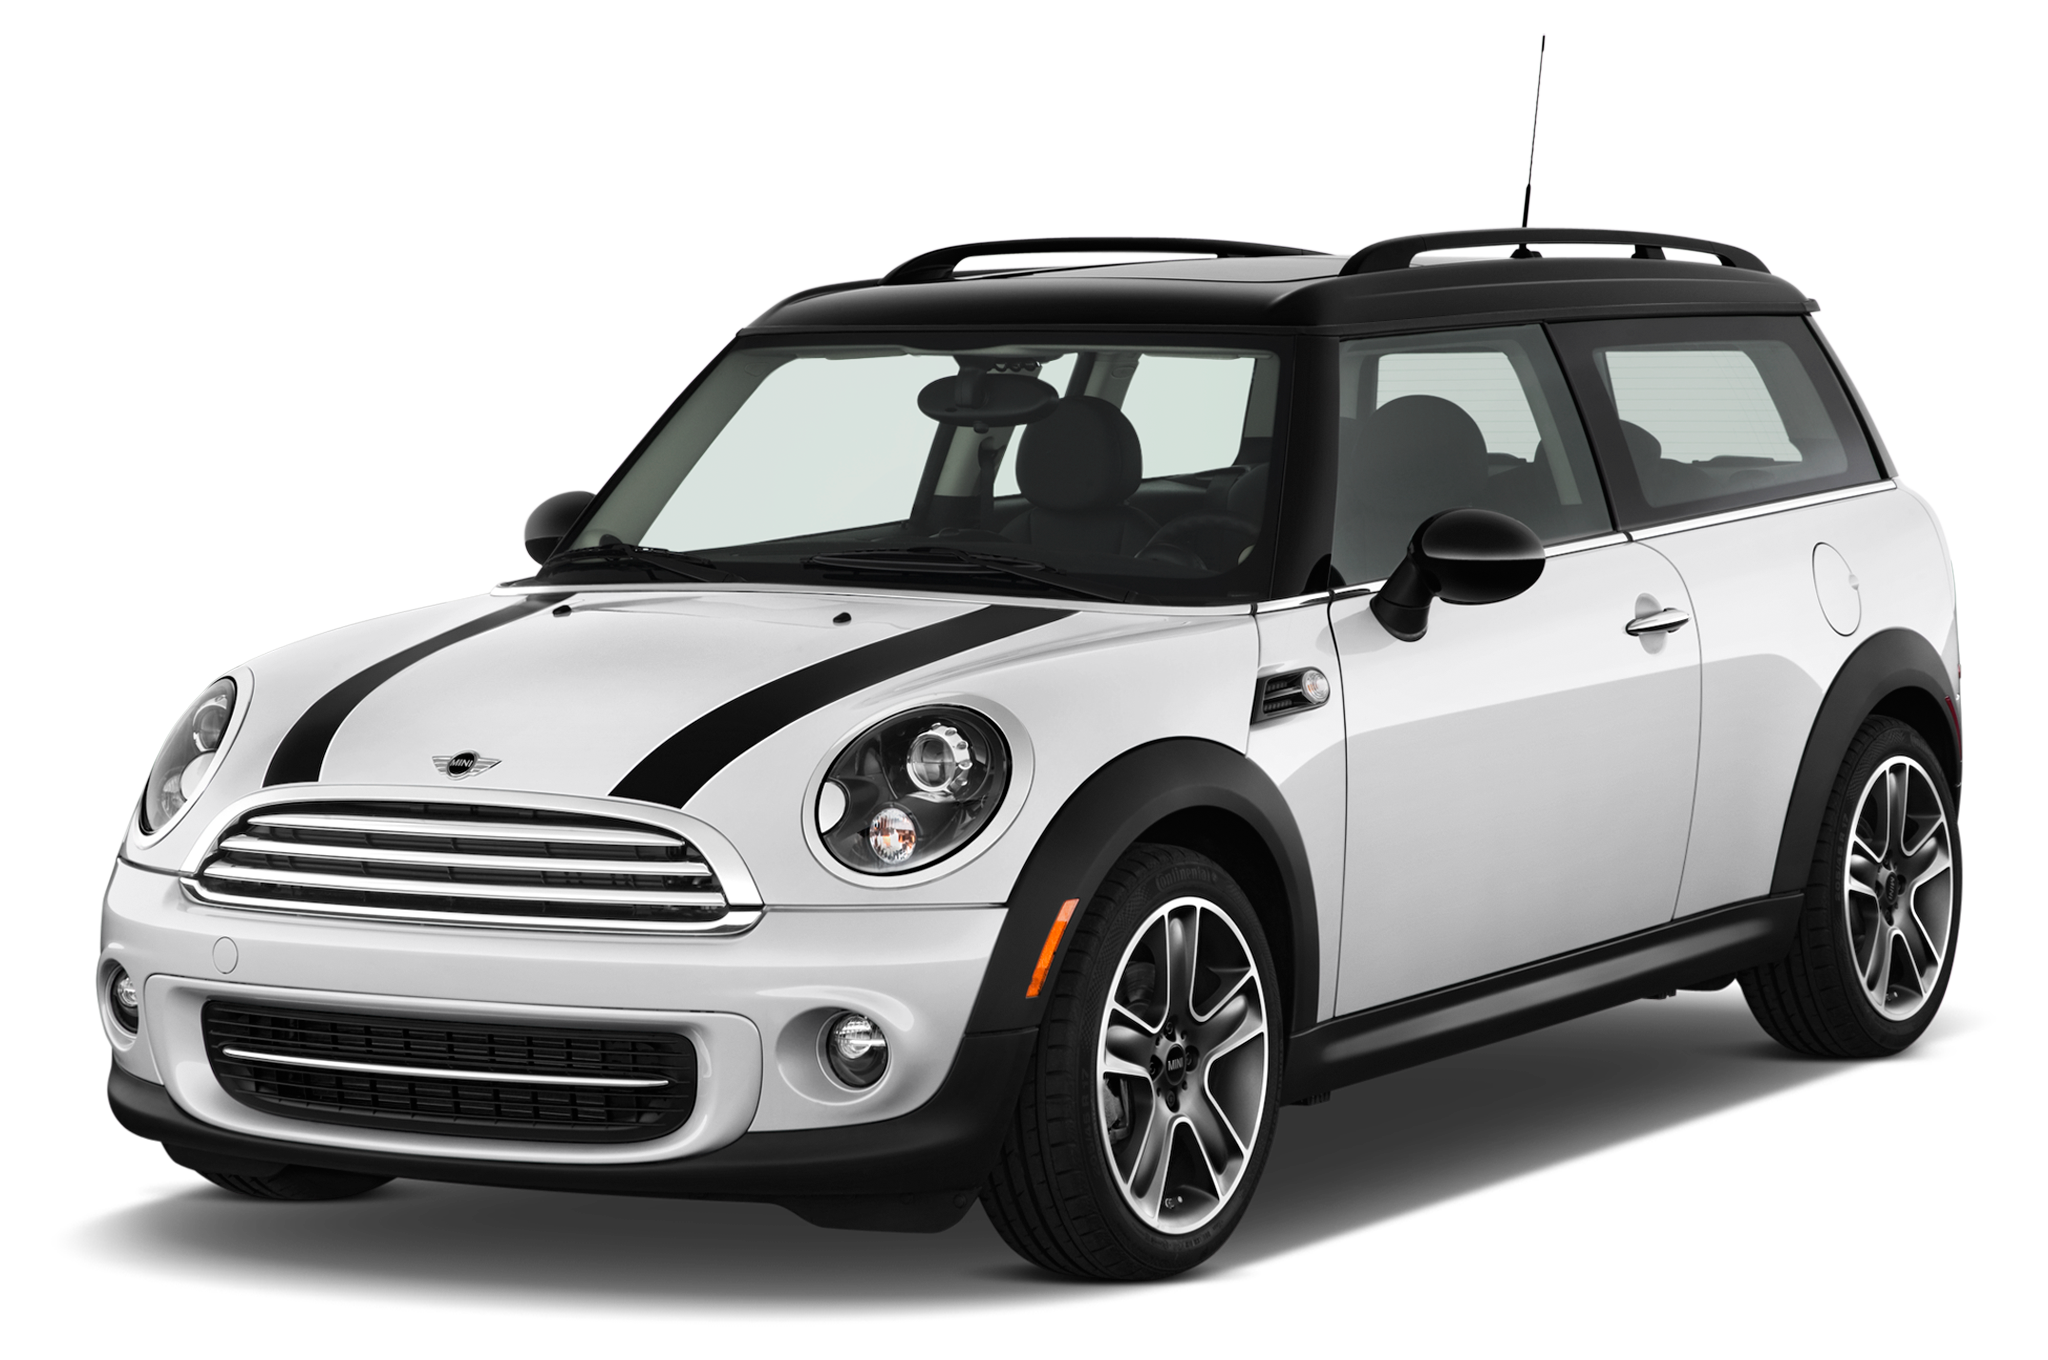 2012 mini cooper reviews and rating | motortrend